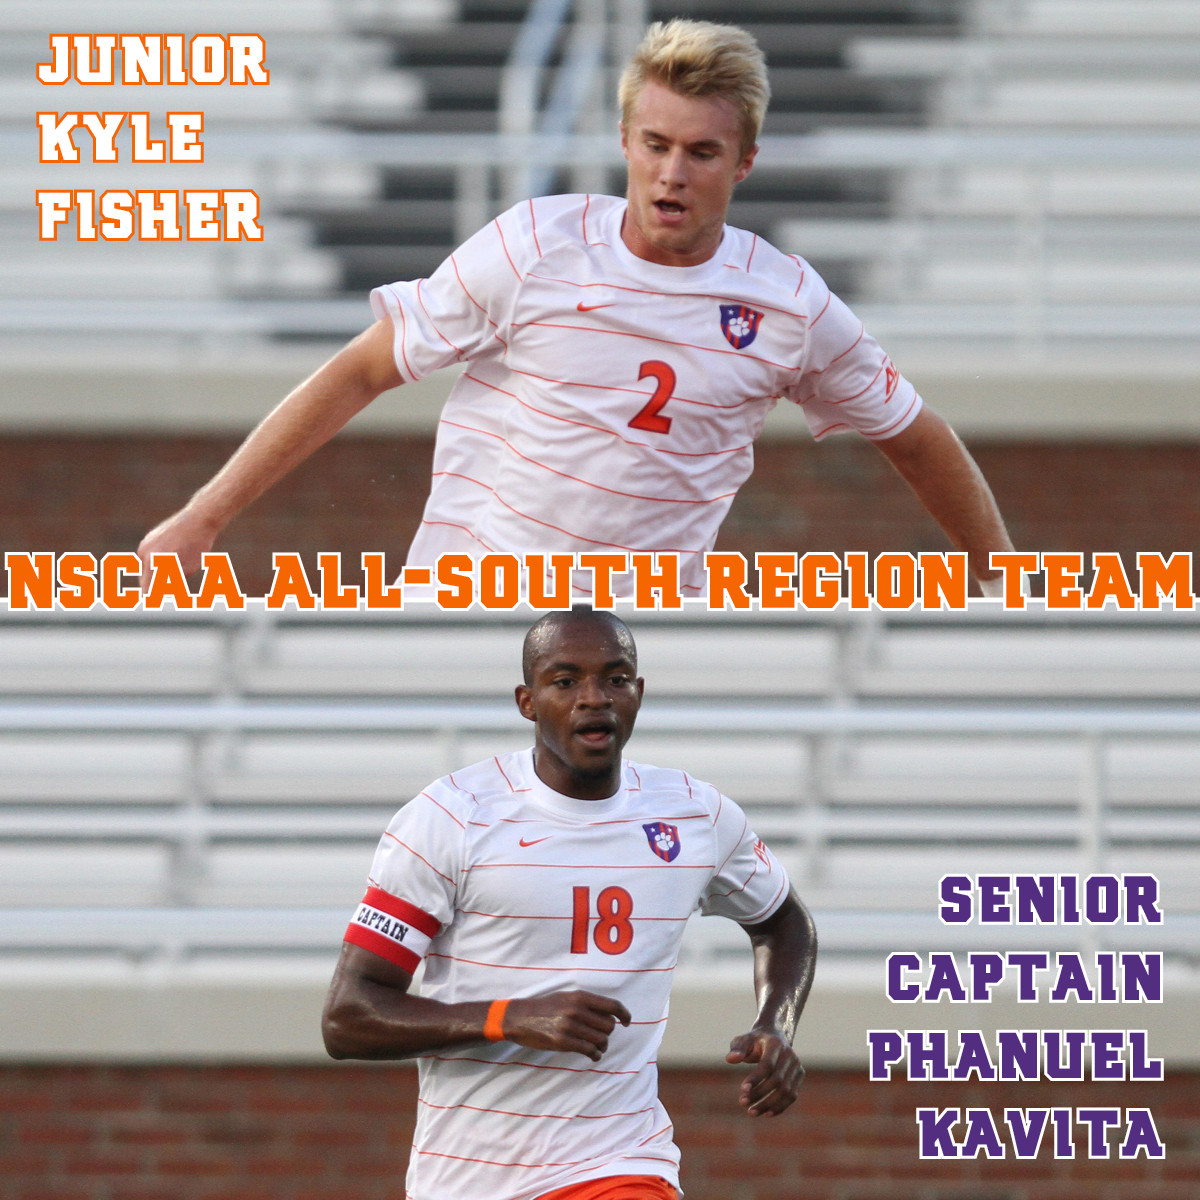 Kavita and Fisher Named to NSCAA All-South Region Team